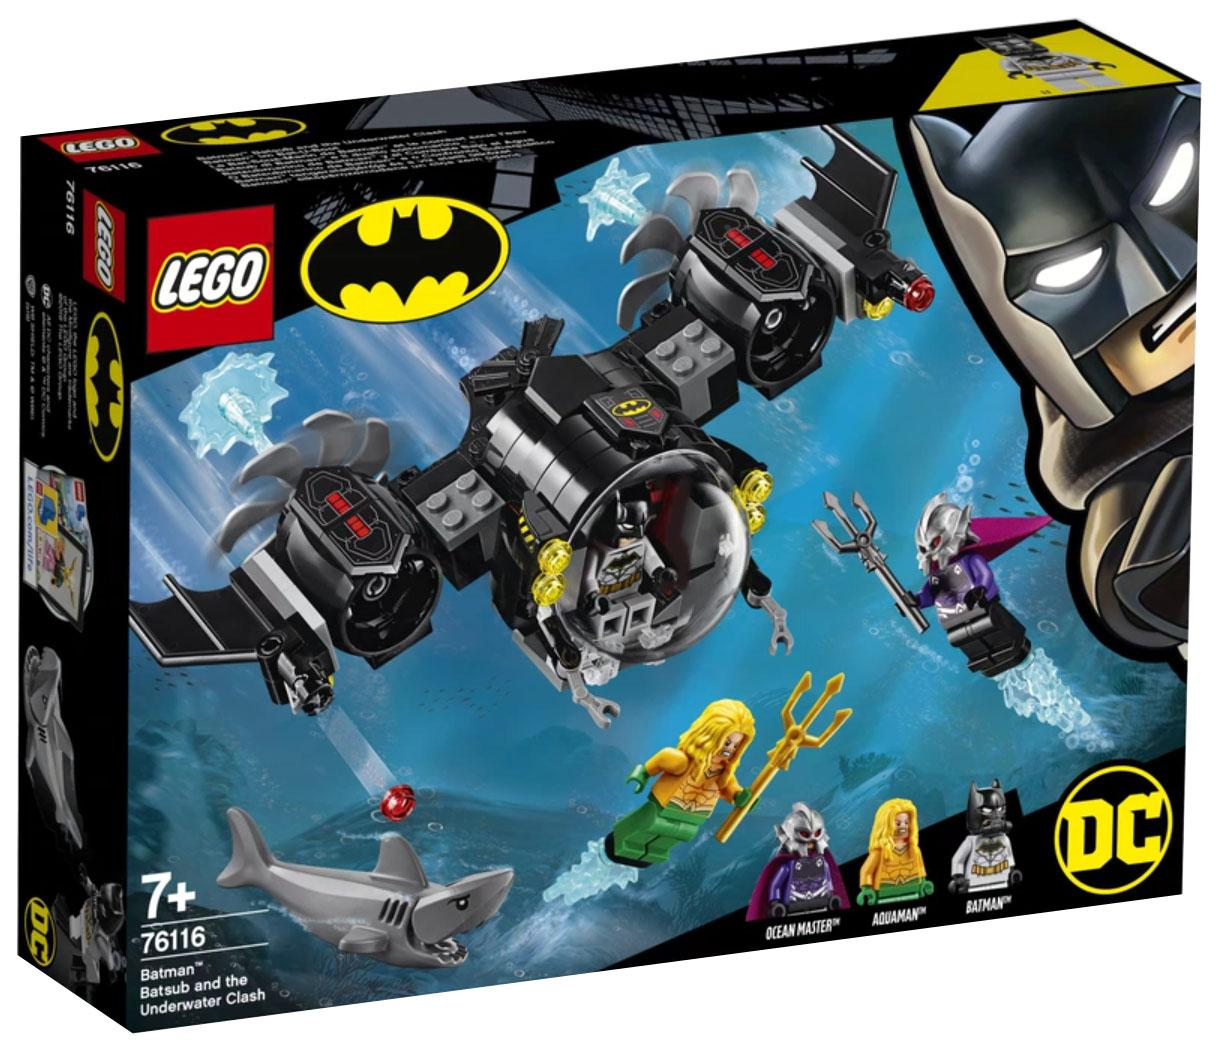 Lego Super Heroes Batman Batsub and the Underwater Clash (76116)